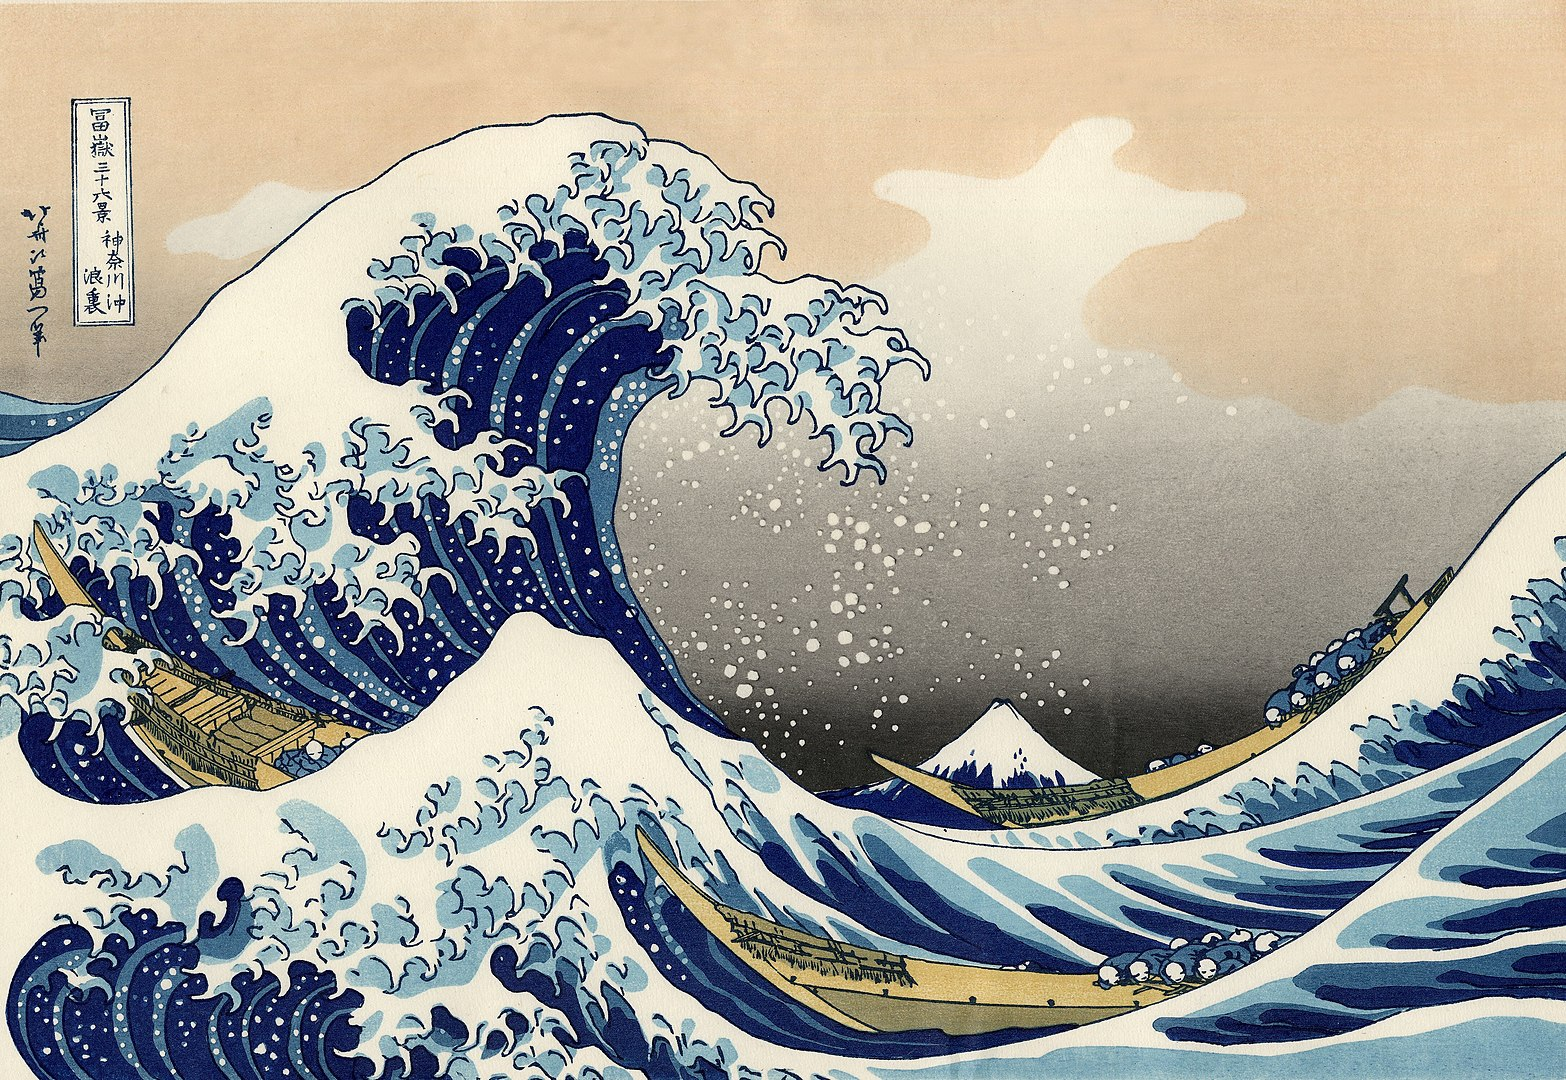 Kopie nach Hokusai, Die große Welle | Quelle: https://commons.wikimedia.org/w/index.php?curid=2646210